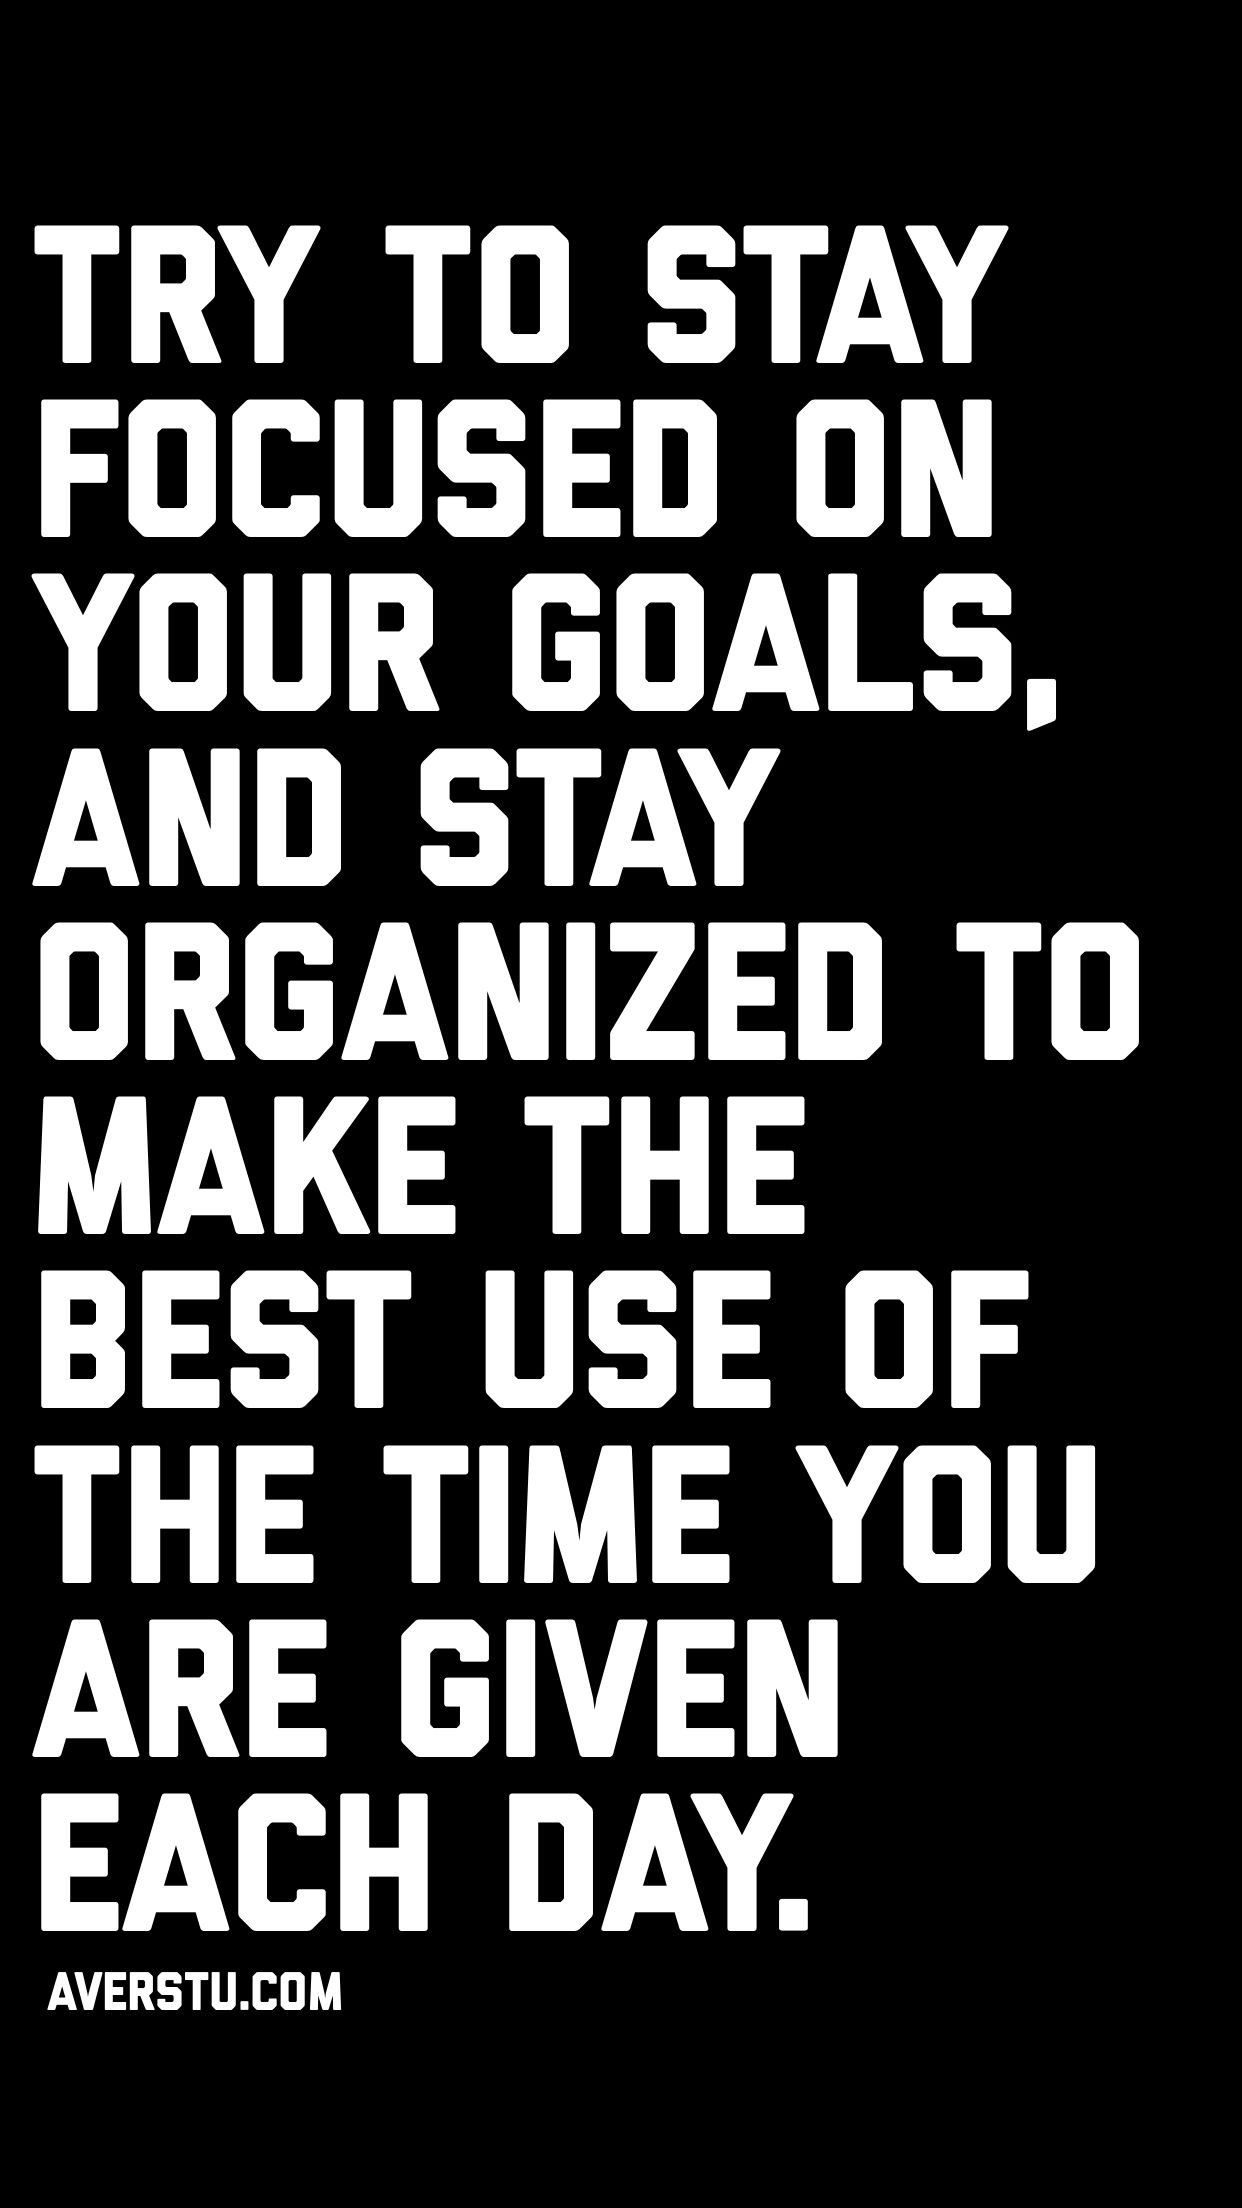 Try to Stay focused on your goals, and stay organized to